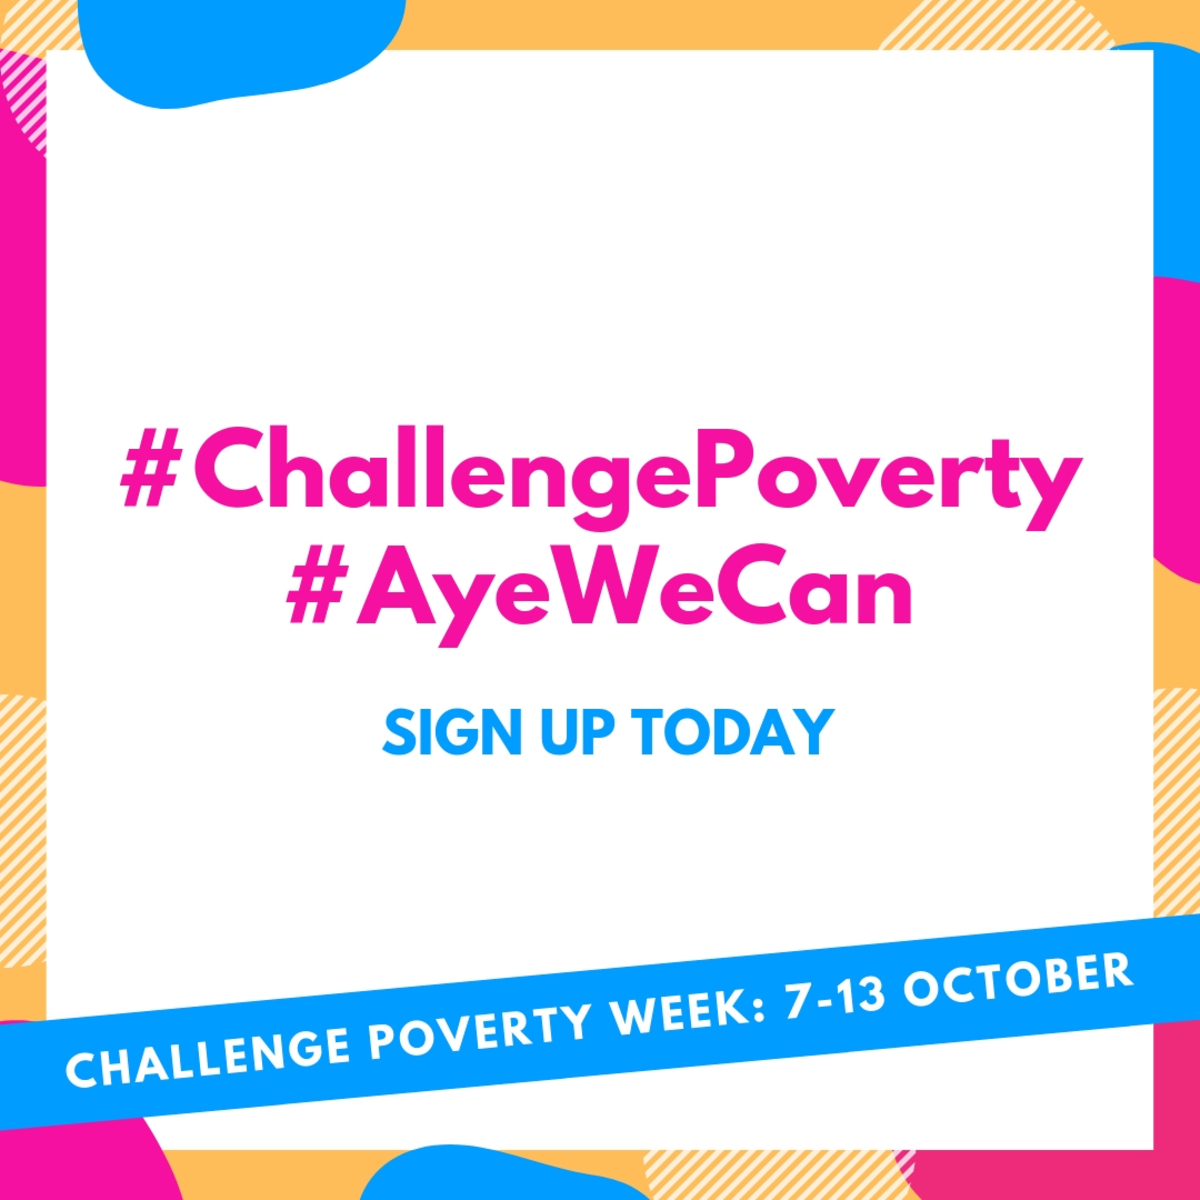 BLOG POST: Challenge Poverty Week